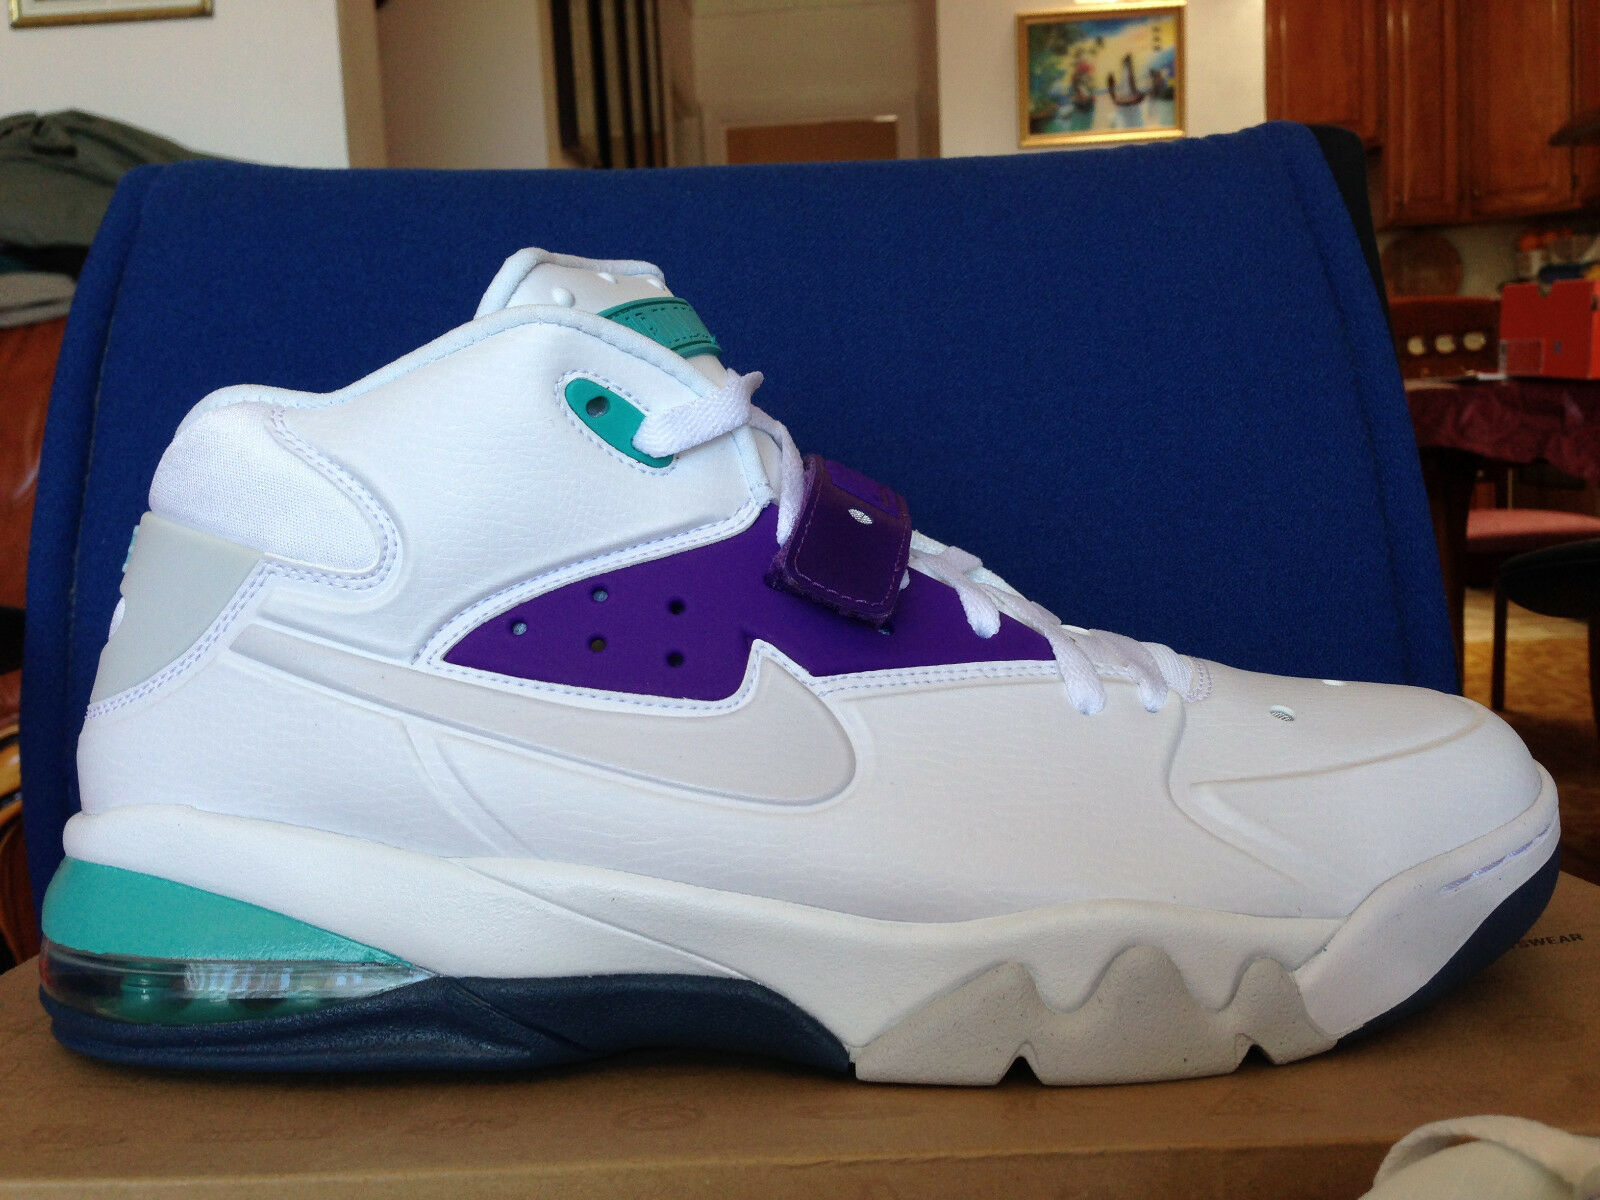 NIKE AIR FORCE MAX 2018 jordan hornets 55105 101 WHITE TEAL PURPLE GRAPE Sz 9